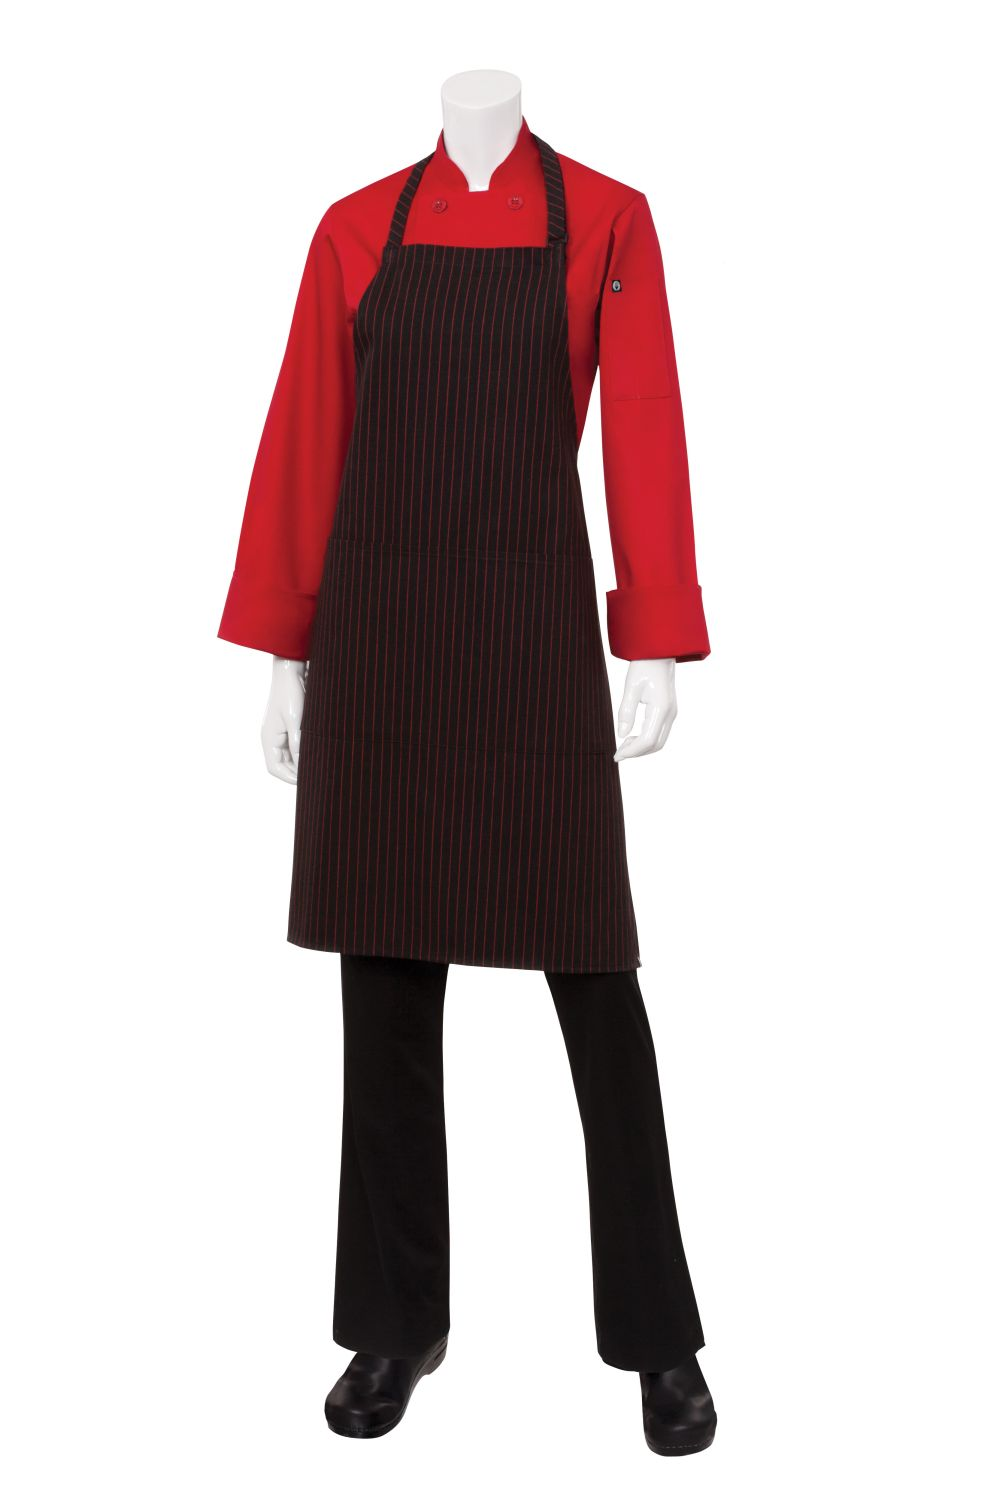 Red Pin Striped Bib Apron-